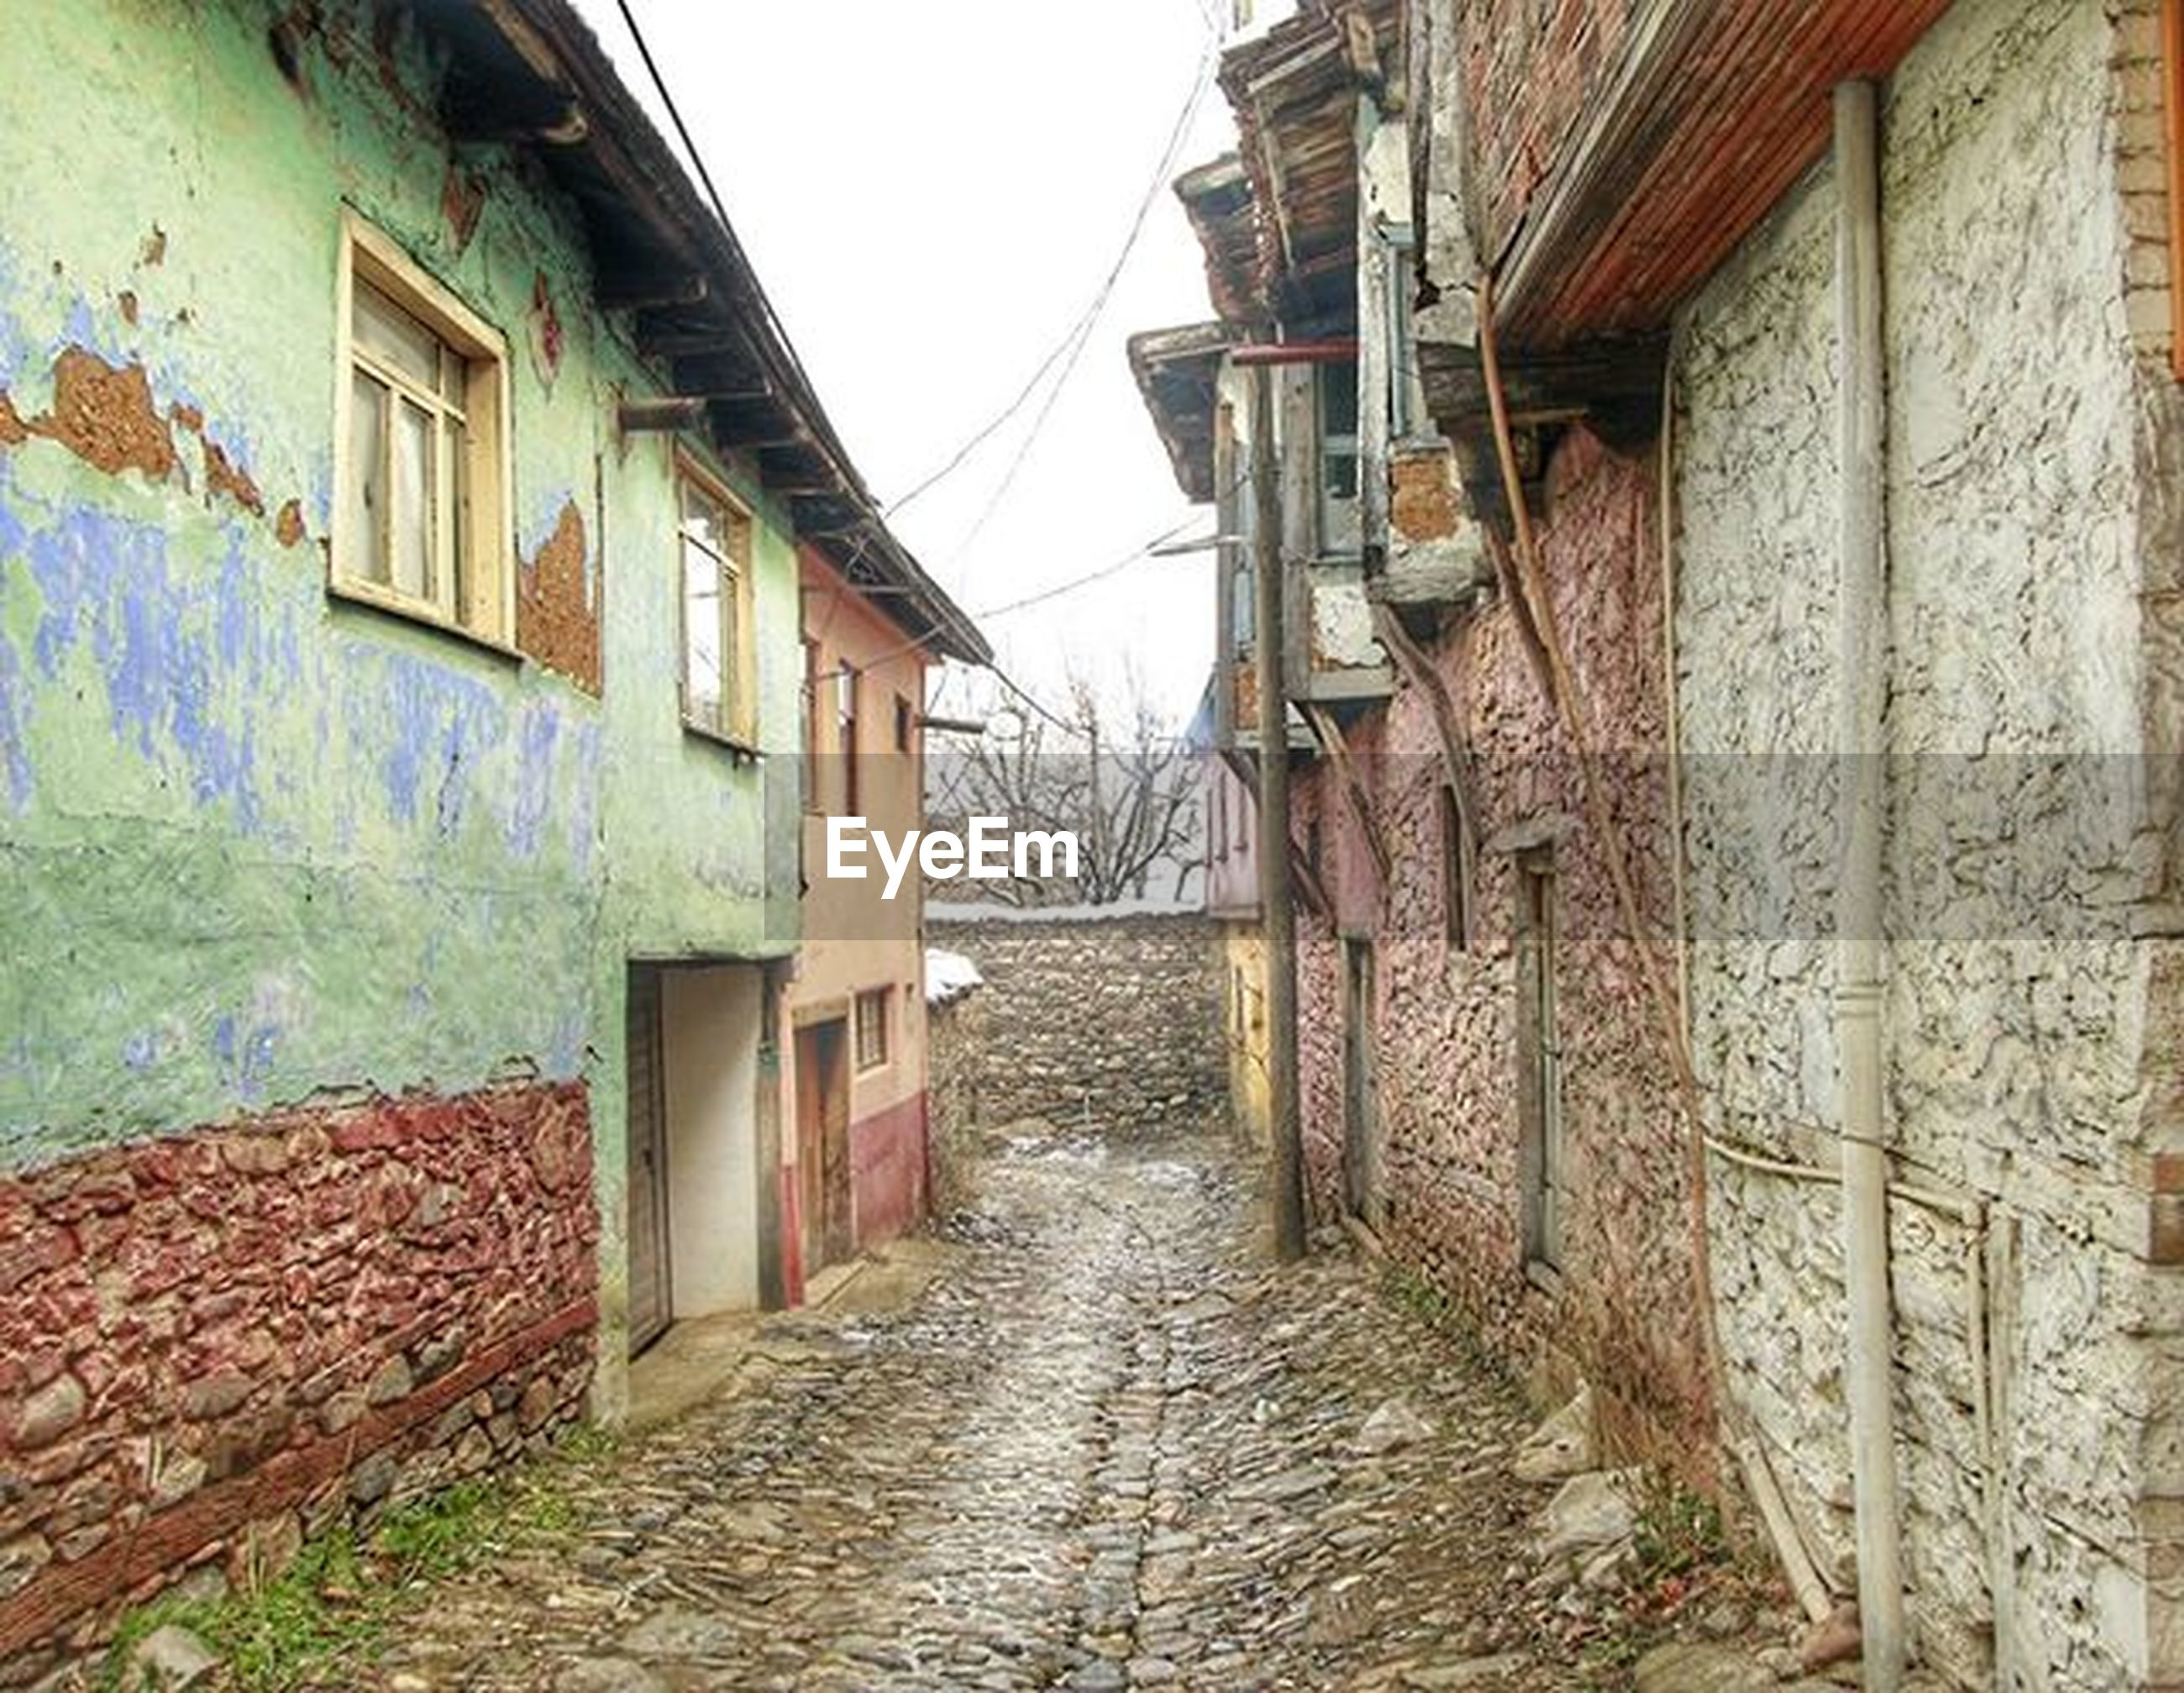 architecture, built structure, building exterior, the way forward, narrow, residential structure, house, residential building, building, alley, diminishing perspective, street, window, wall - building feature, vanishing point, cobblestone, walkway, wall, town, old